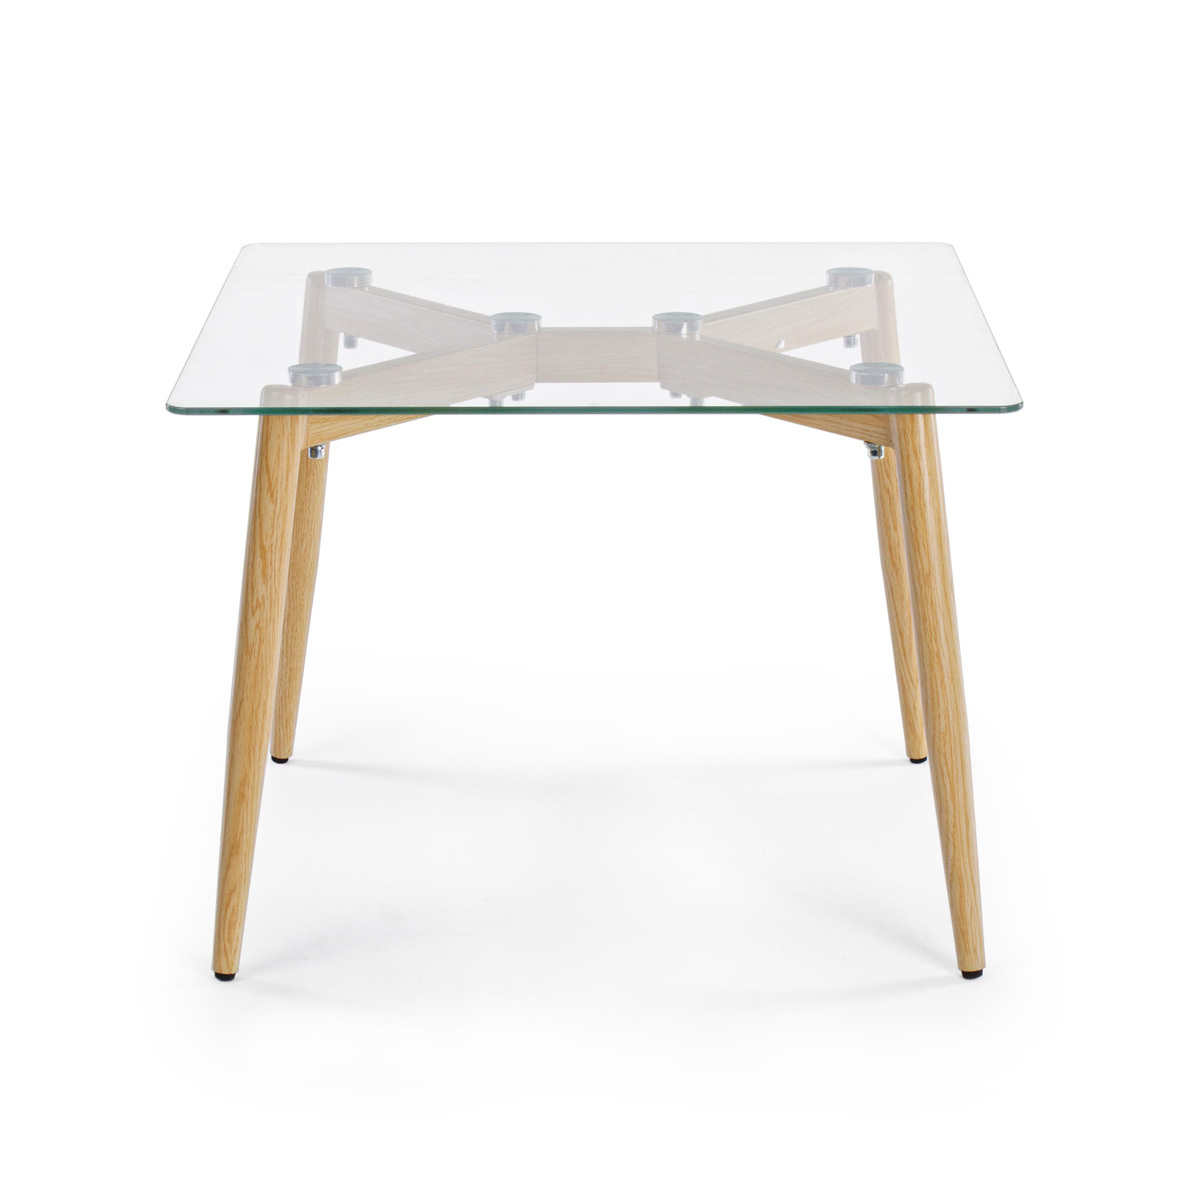 Photos 2: Bizzotto Metal and glass coffee table 60 x 60 0730795